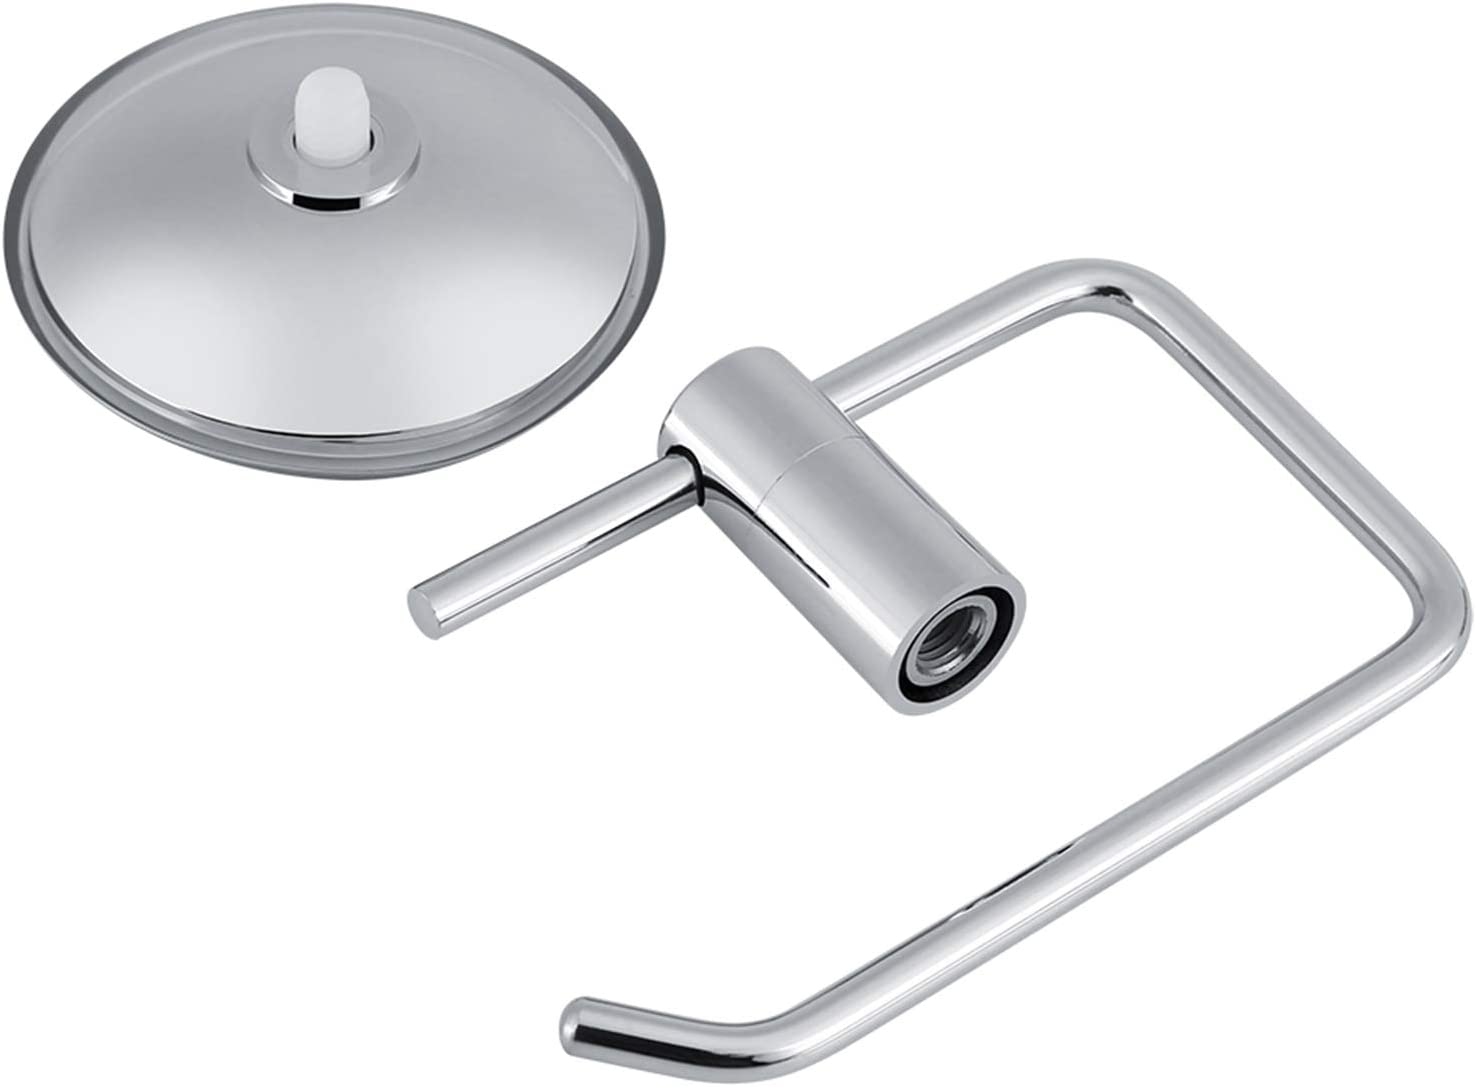 Delaman Toilet Roll Department Max 88% OFF store Paper Bathroom Holder Stainless Steel